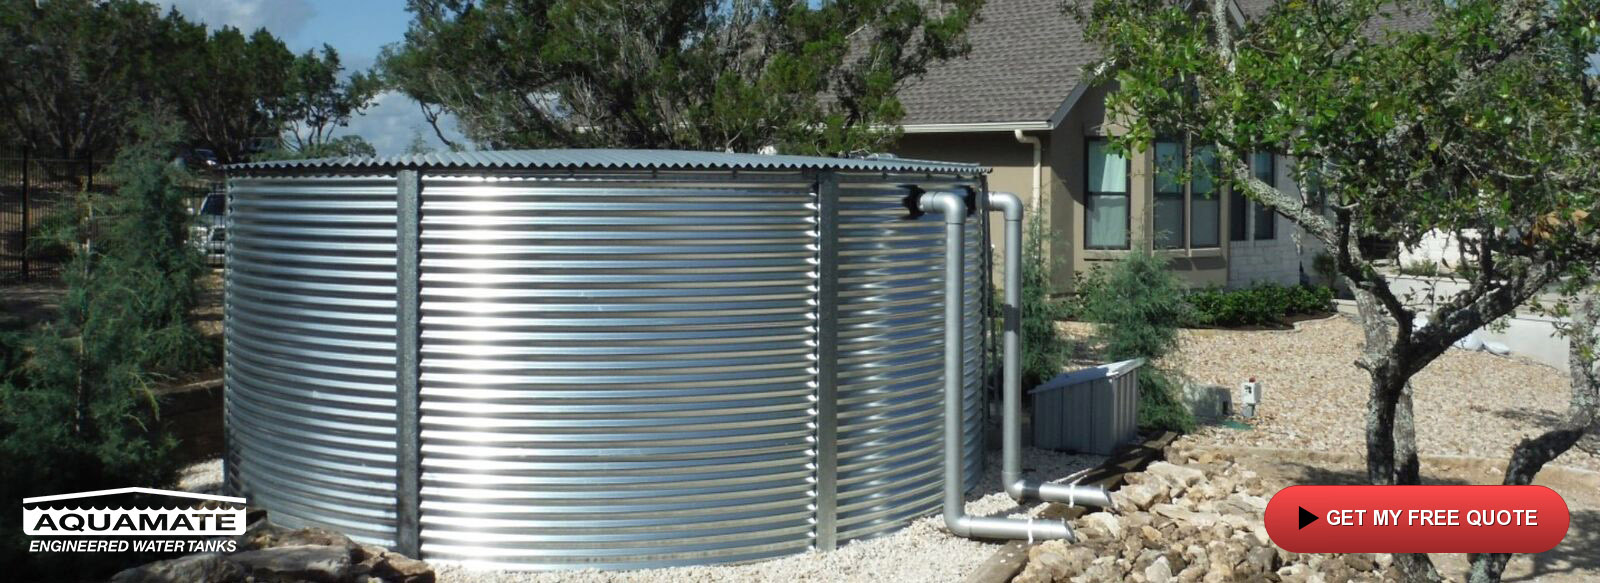 Steel Water Tanks